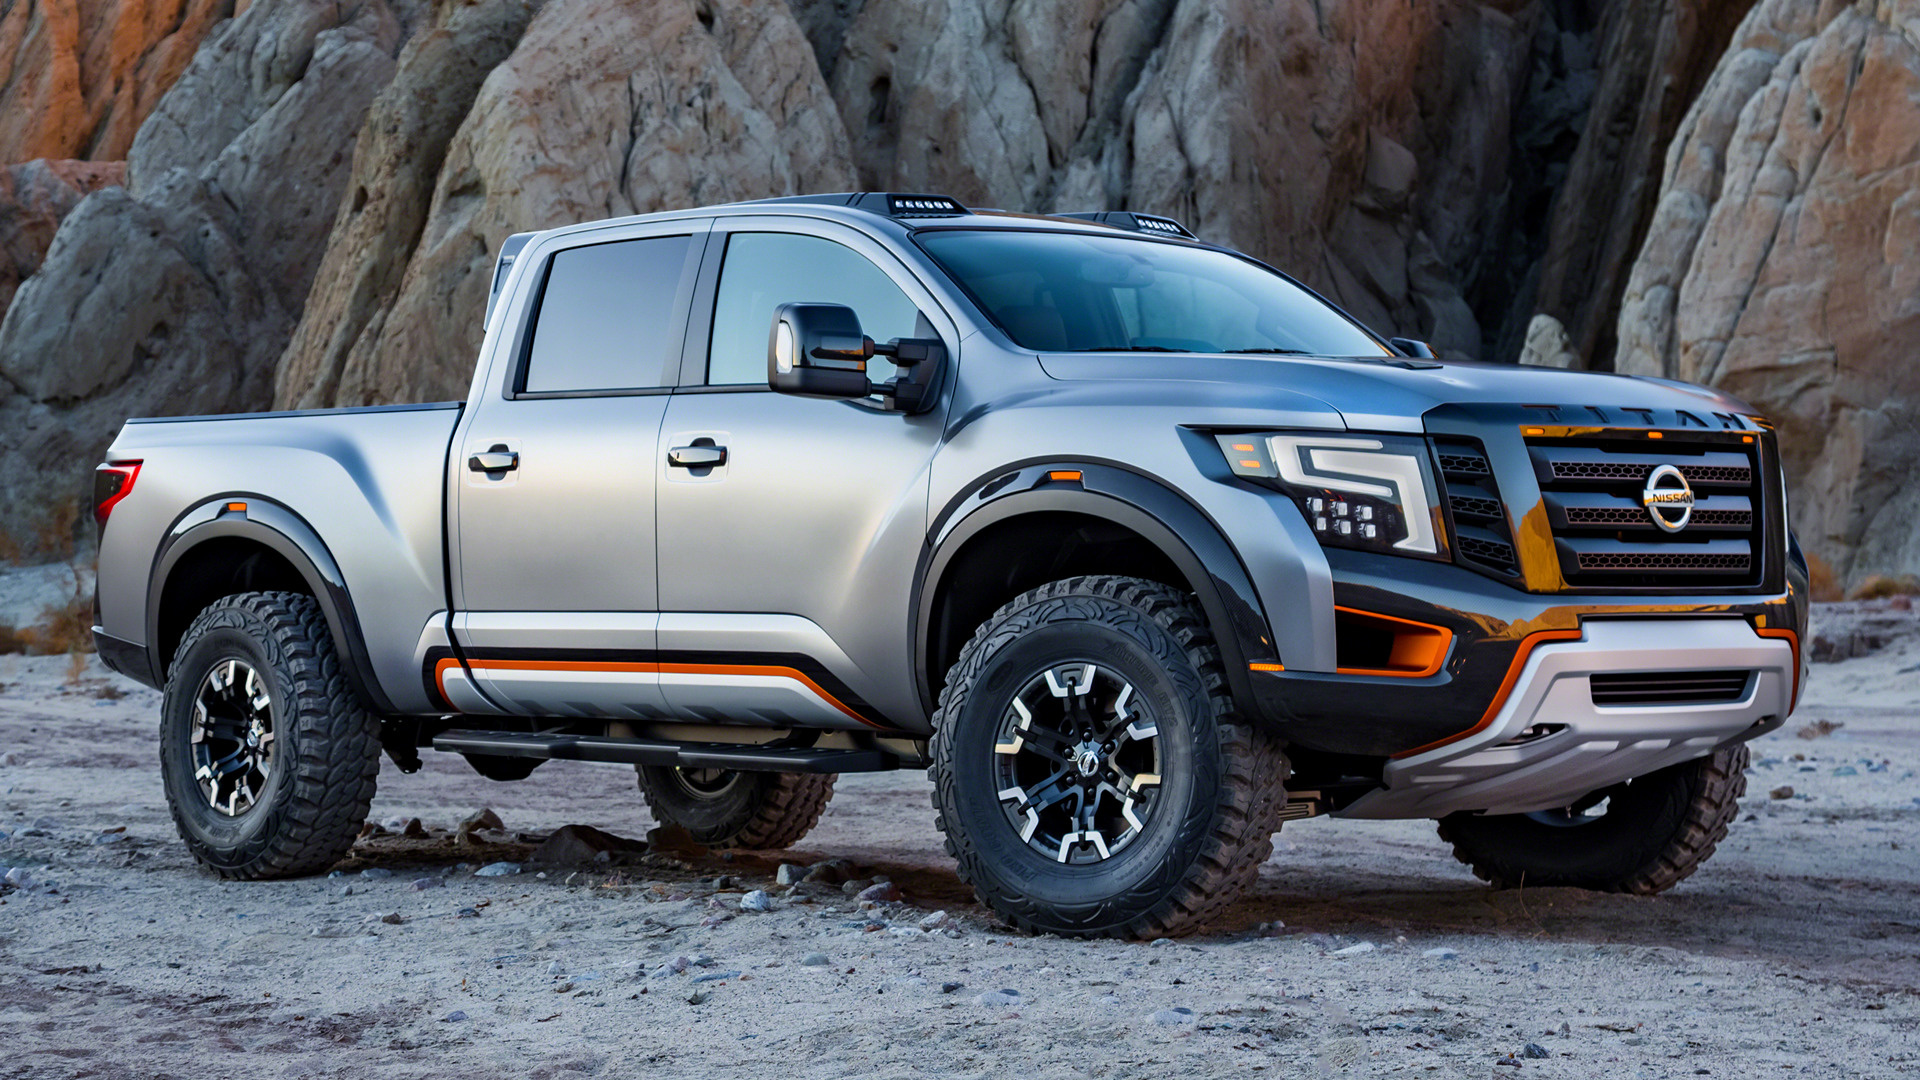 2016 Nissan Titan Warrior Concept Wallpapers And Hd